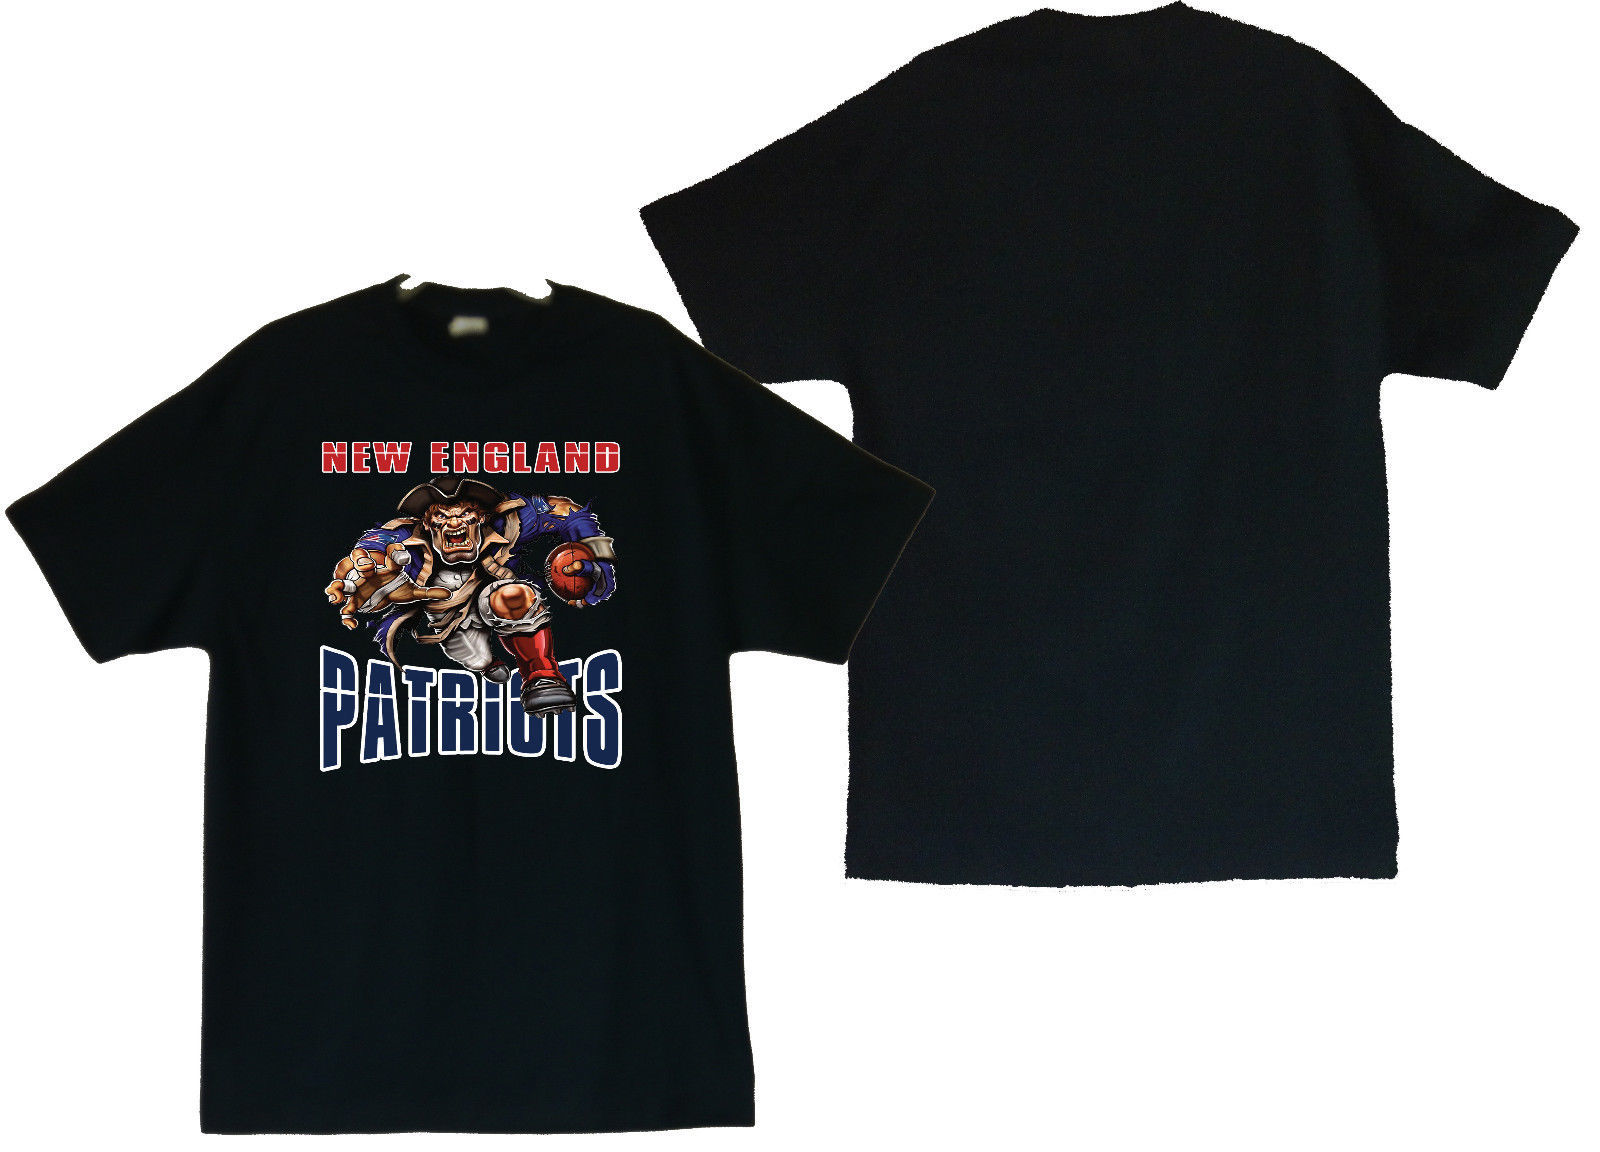 Primary image for New England Patriots Men's T-Shirt (S / M / L / XL / 2XL / 3XL / 4XL)